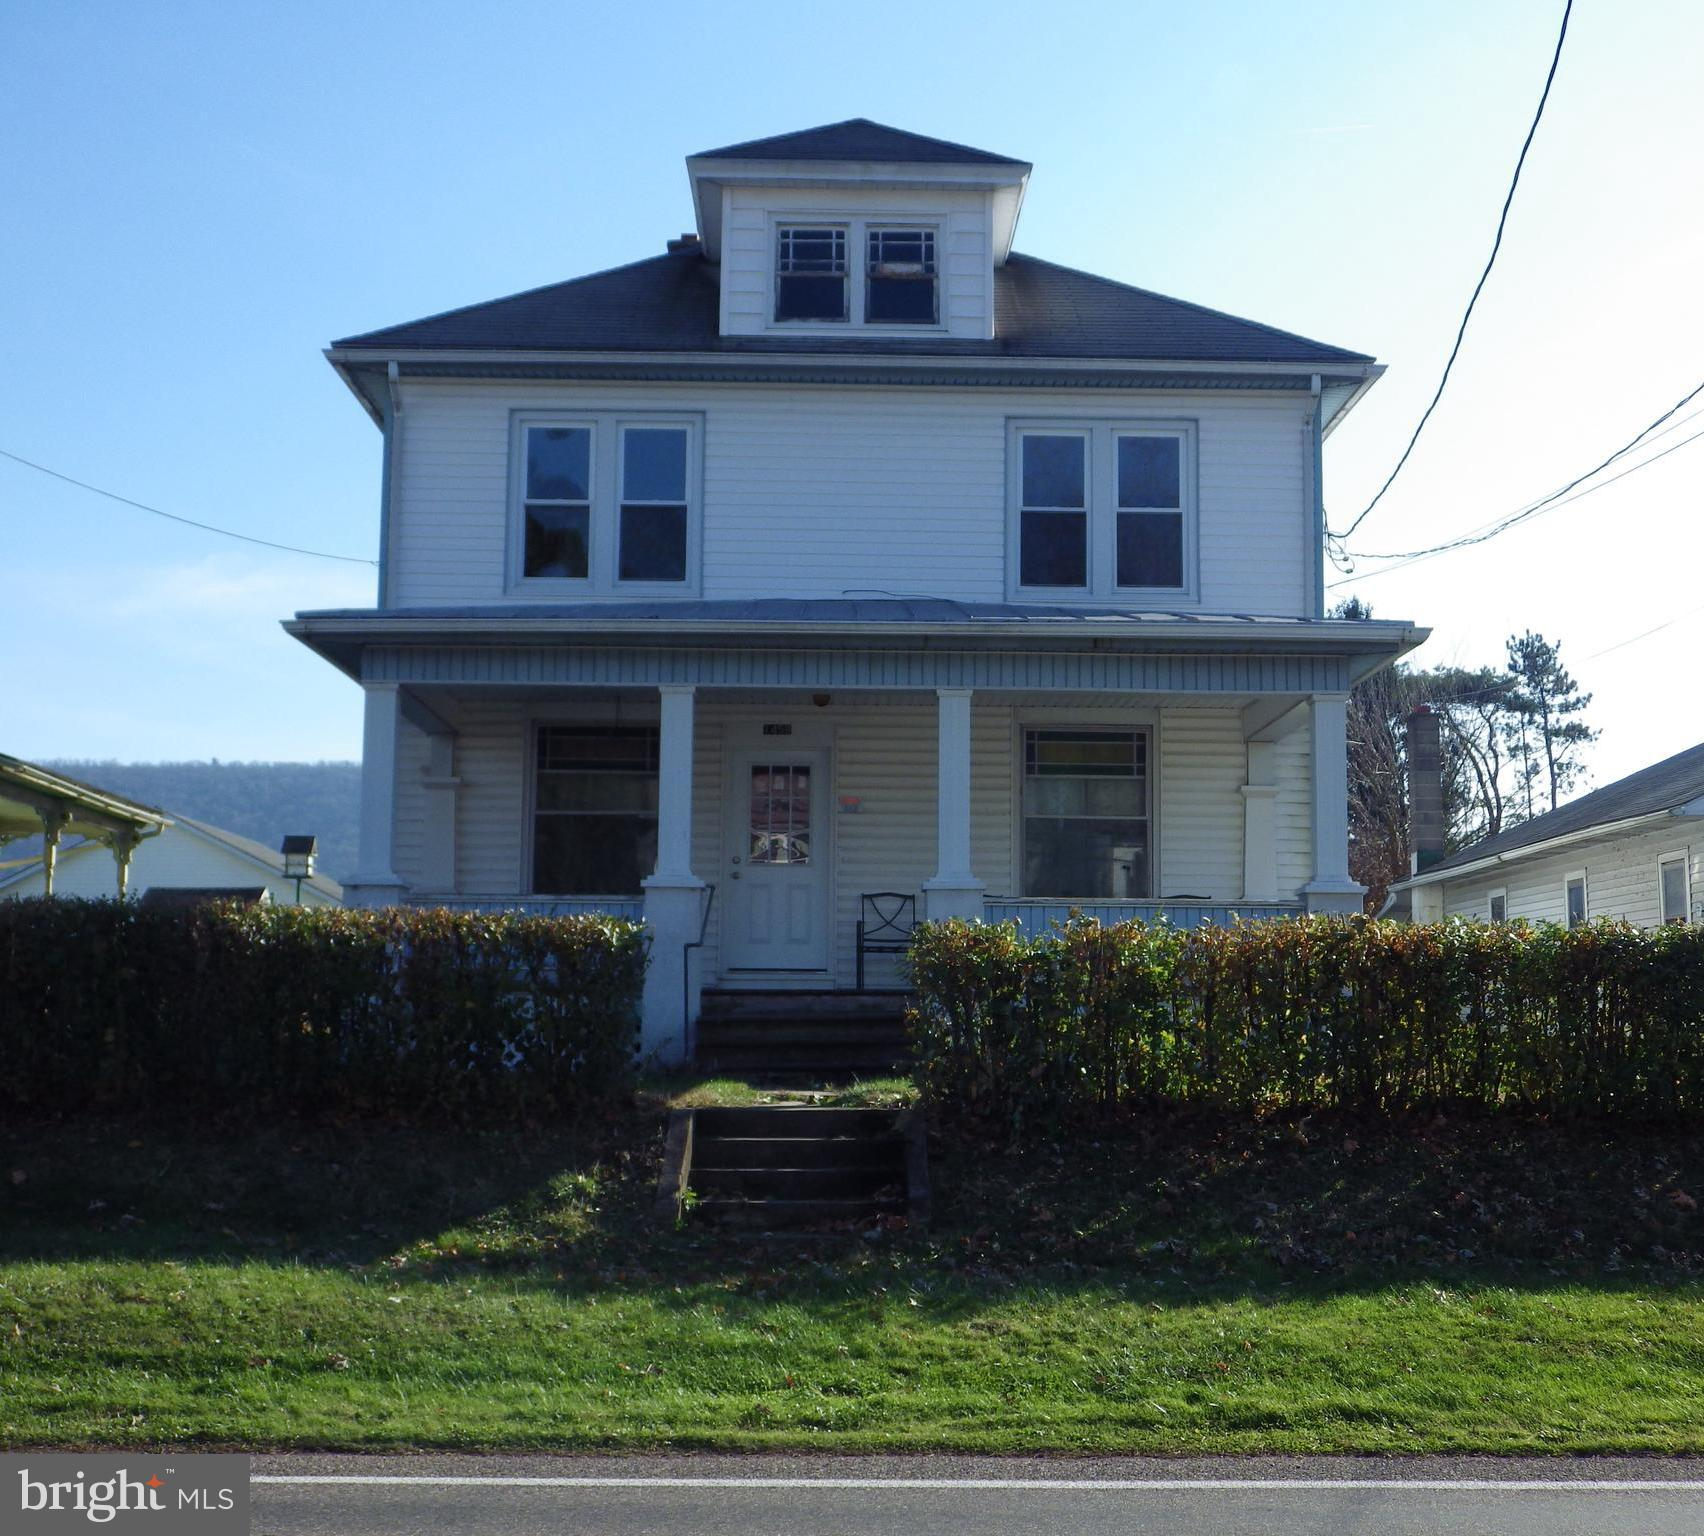 1459 W MAIN STREET, VALLEY VIEW, PA 17983